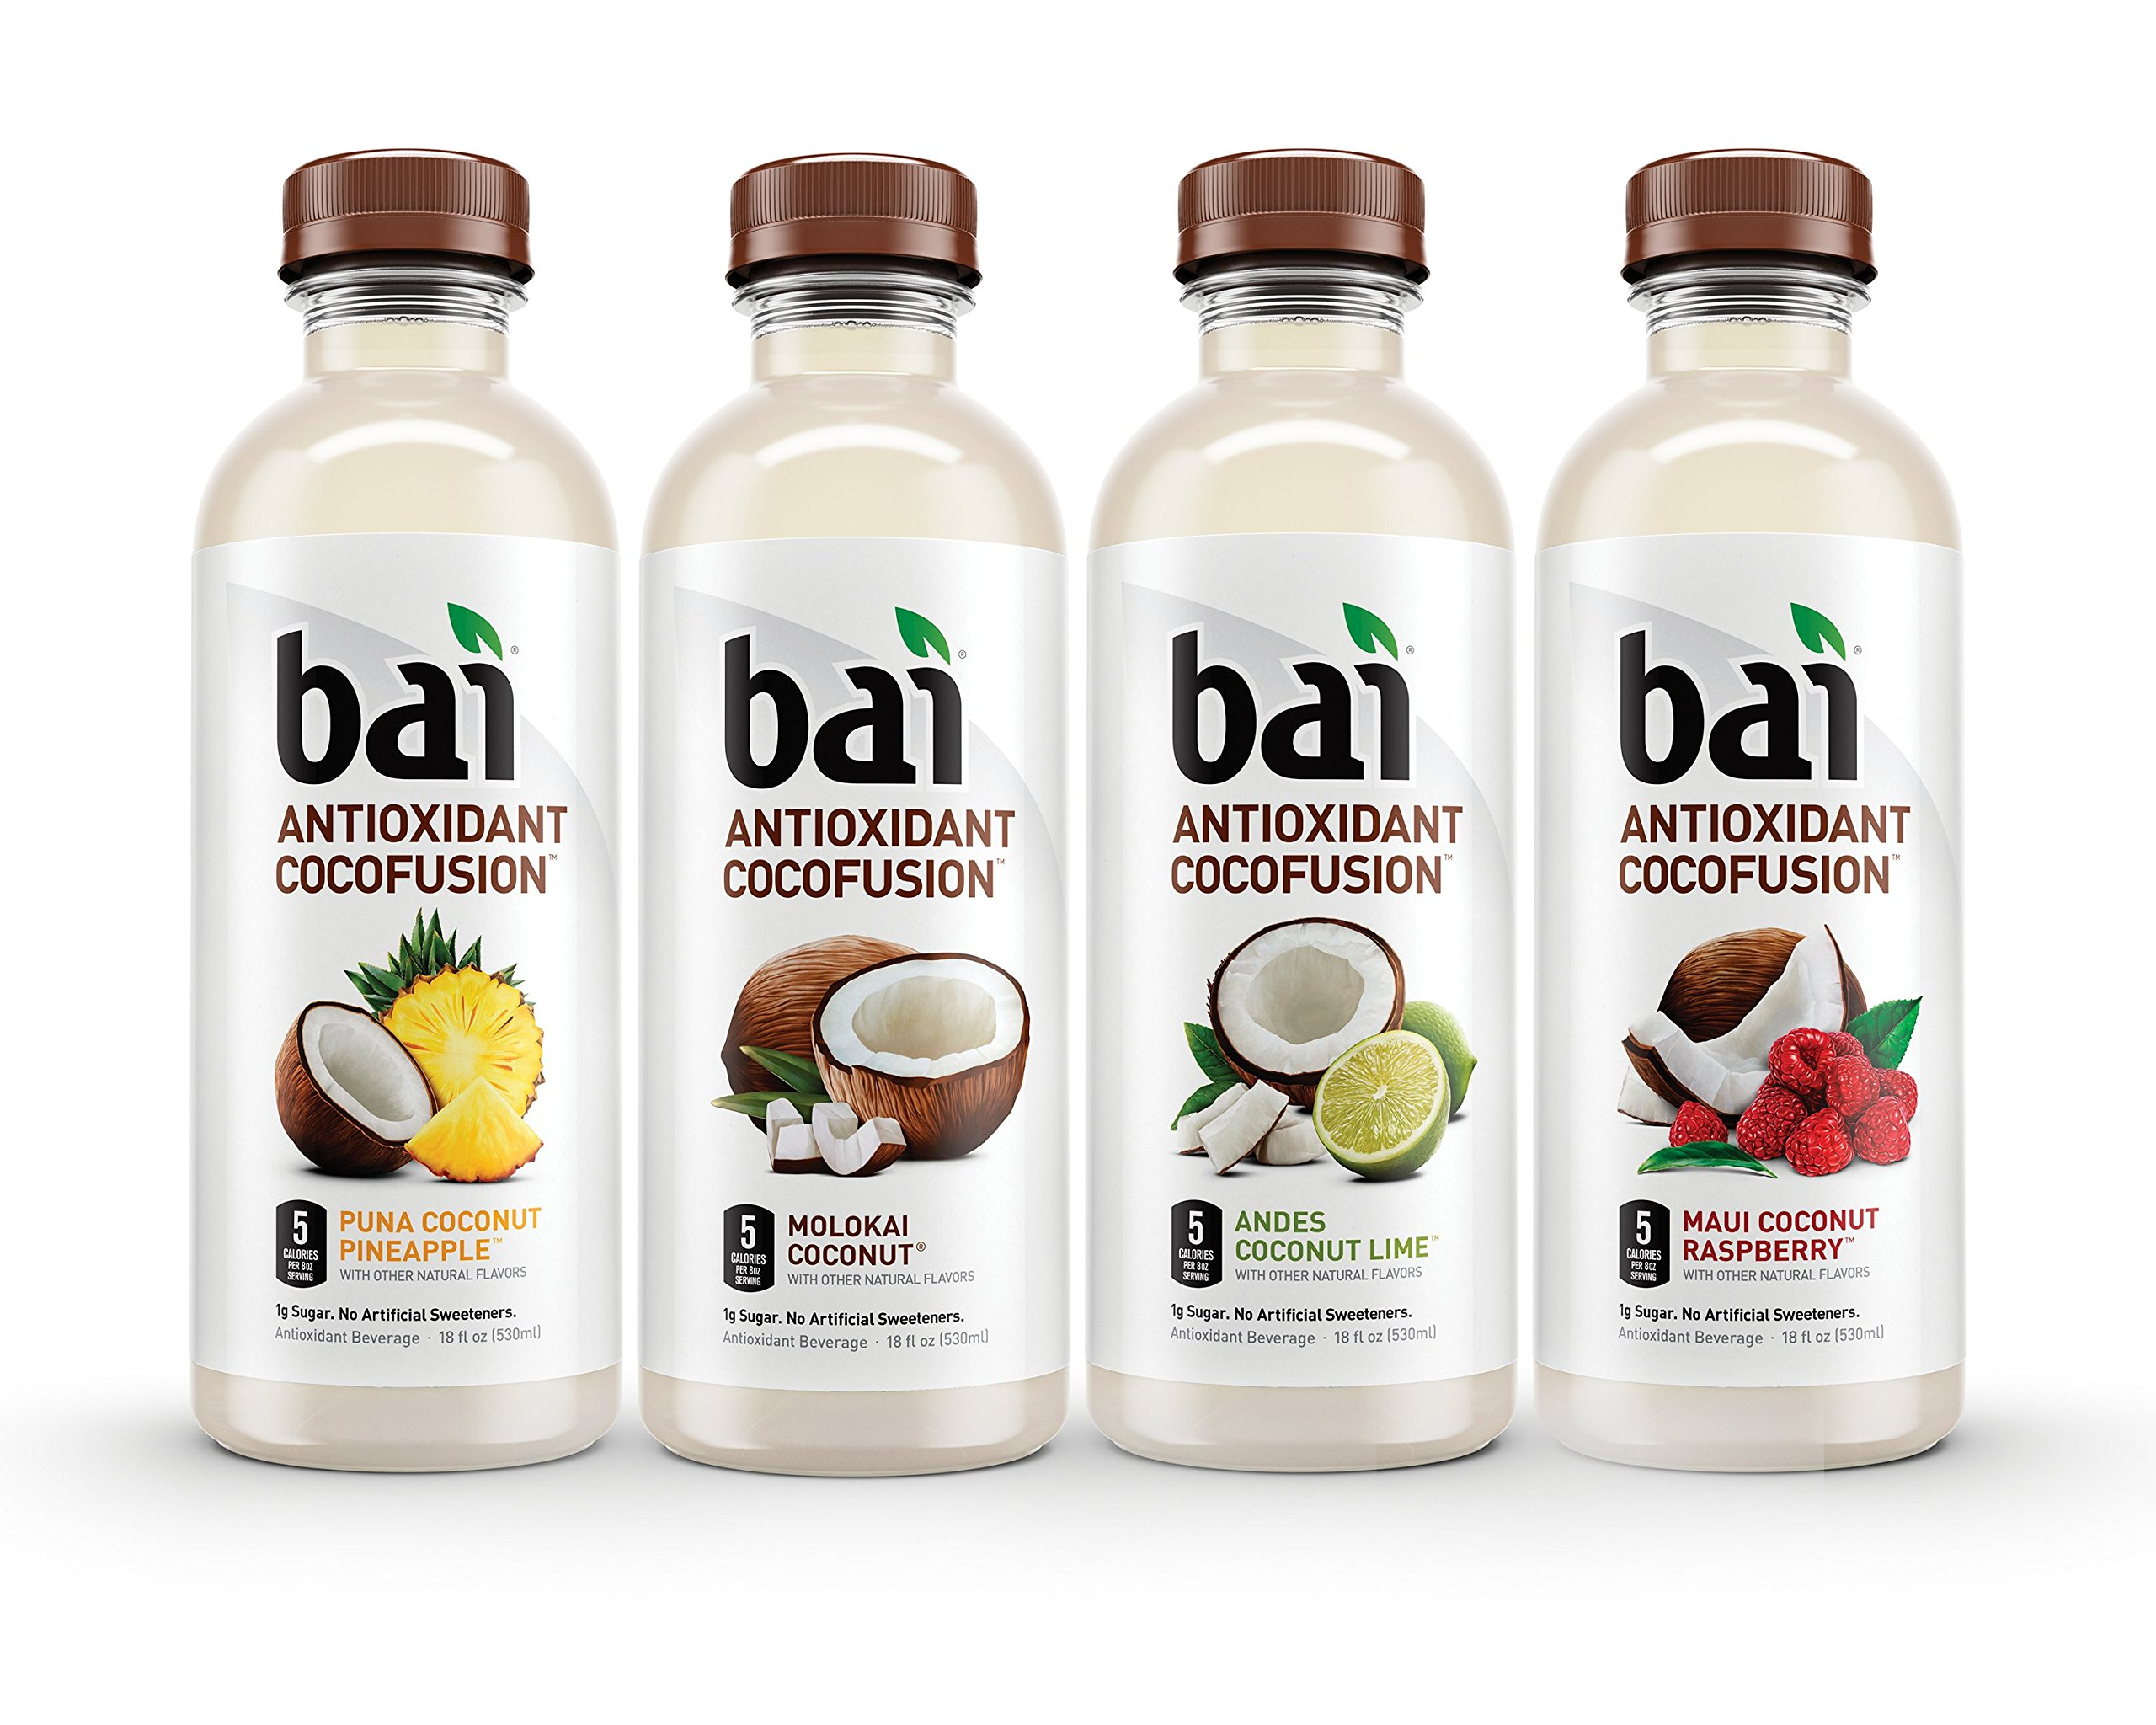 Bai Cocofusions Variety Pack, Antioxidant Infused Beverages, 18 Fluid Ounce Bottles, 12 count, (3 bottles each of Andes Coconut Lime, Maui Coconut Raspberry, Molokai Coconut, Puna Coconut Pineapple)